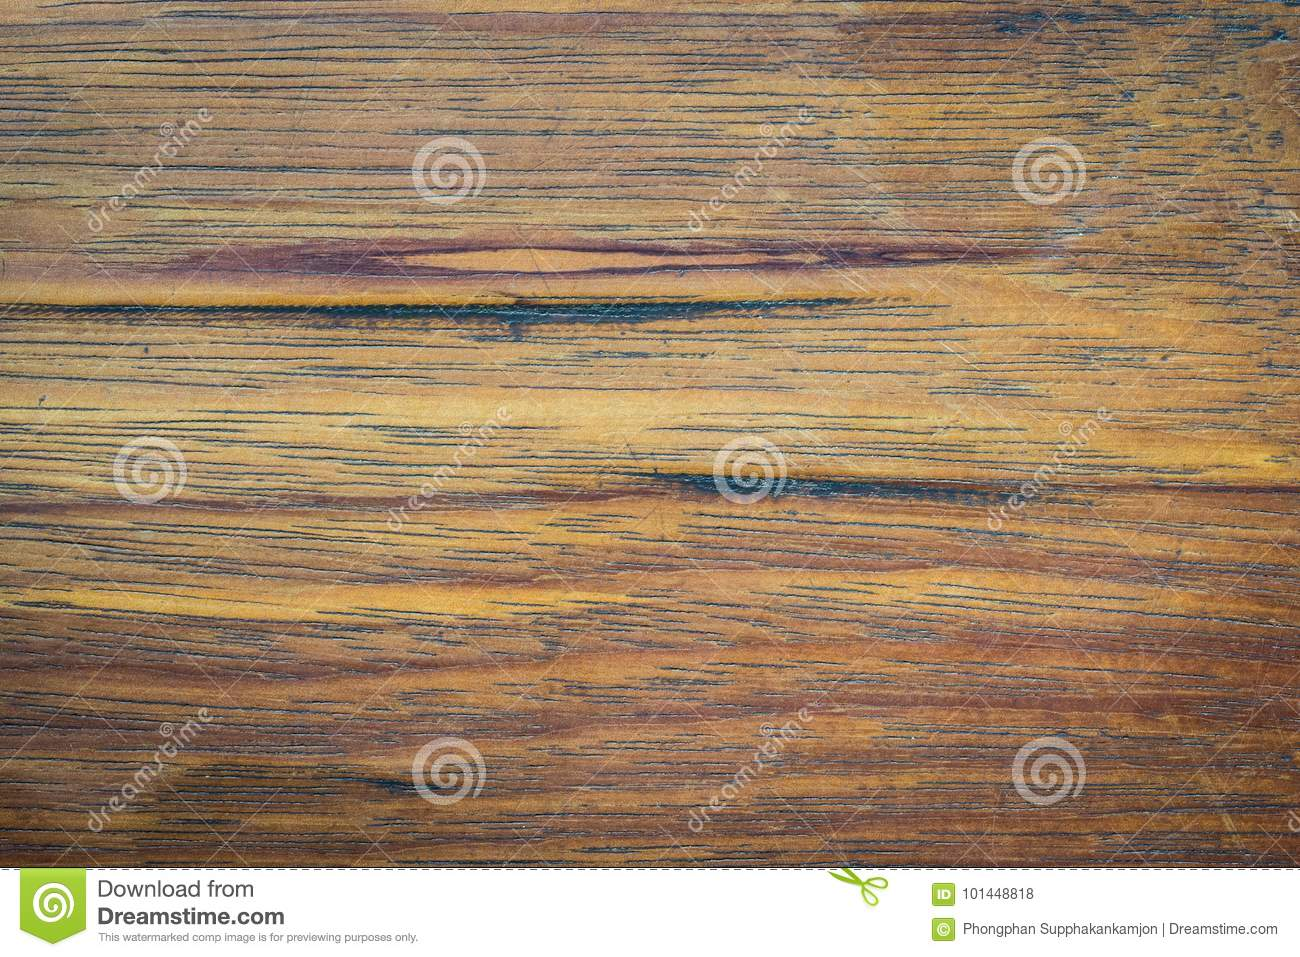 Abstract surface wood table texture background close up